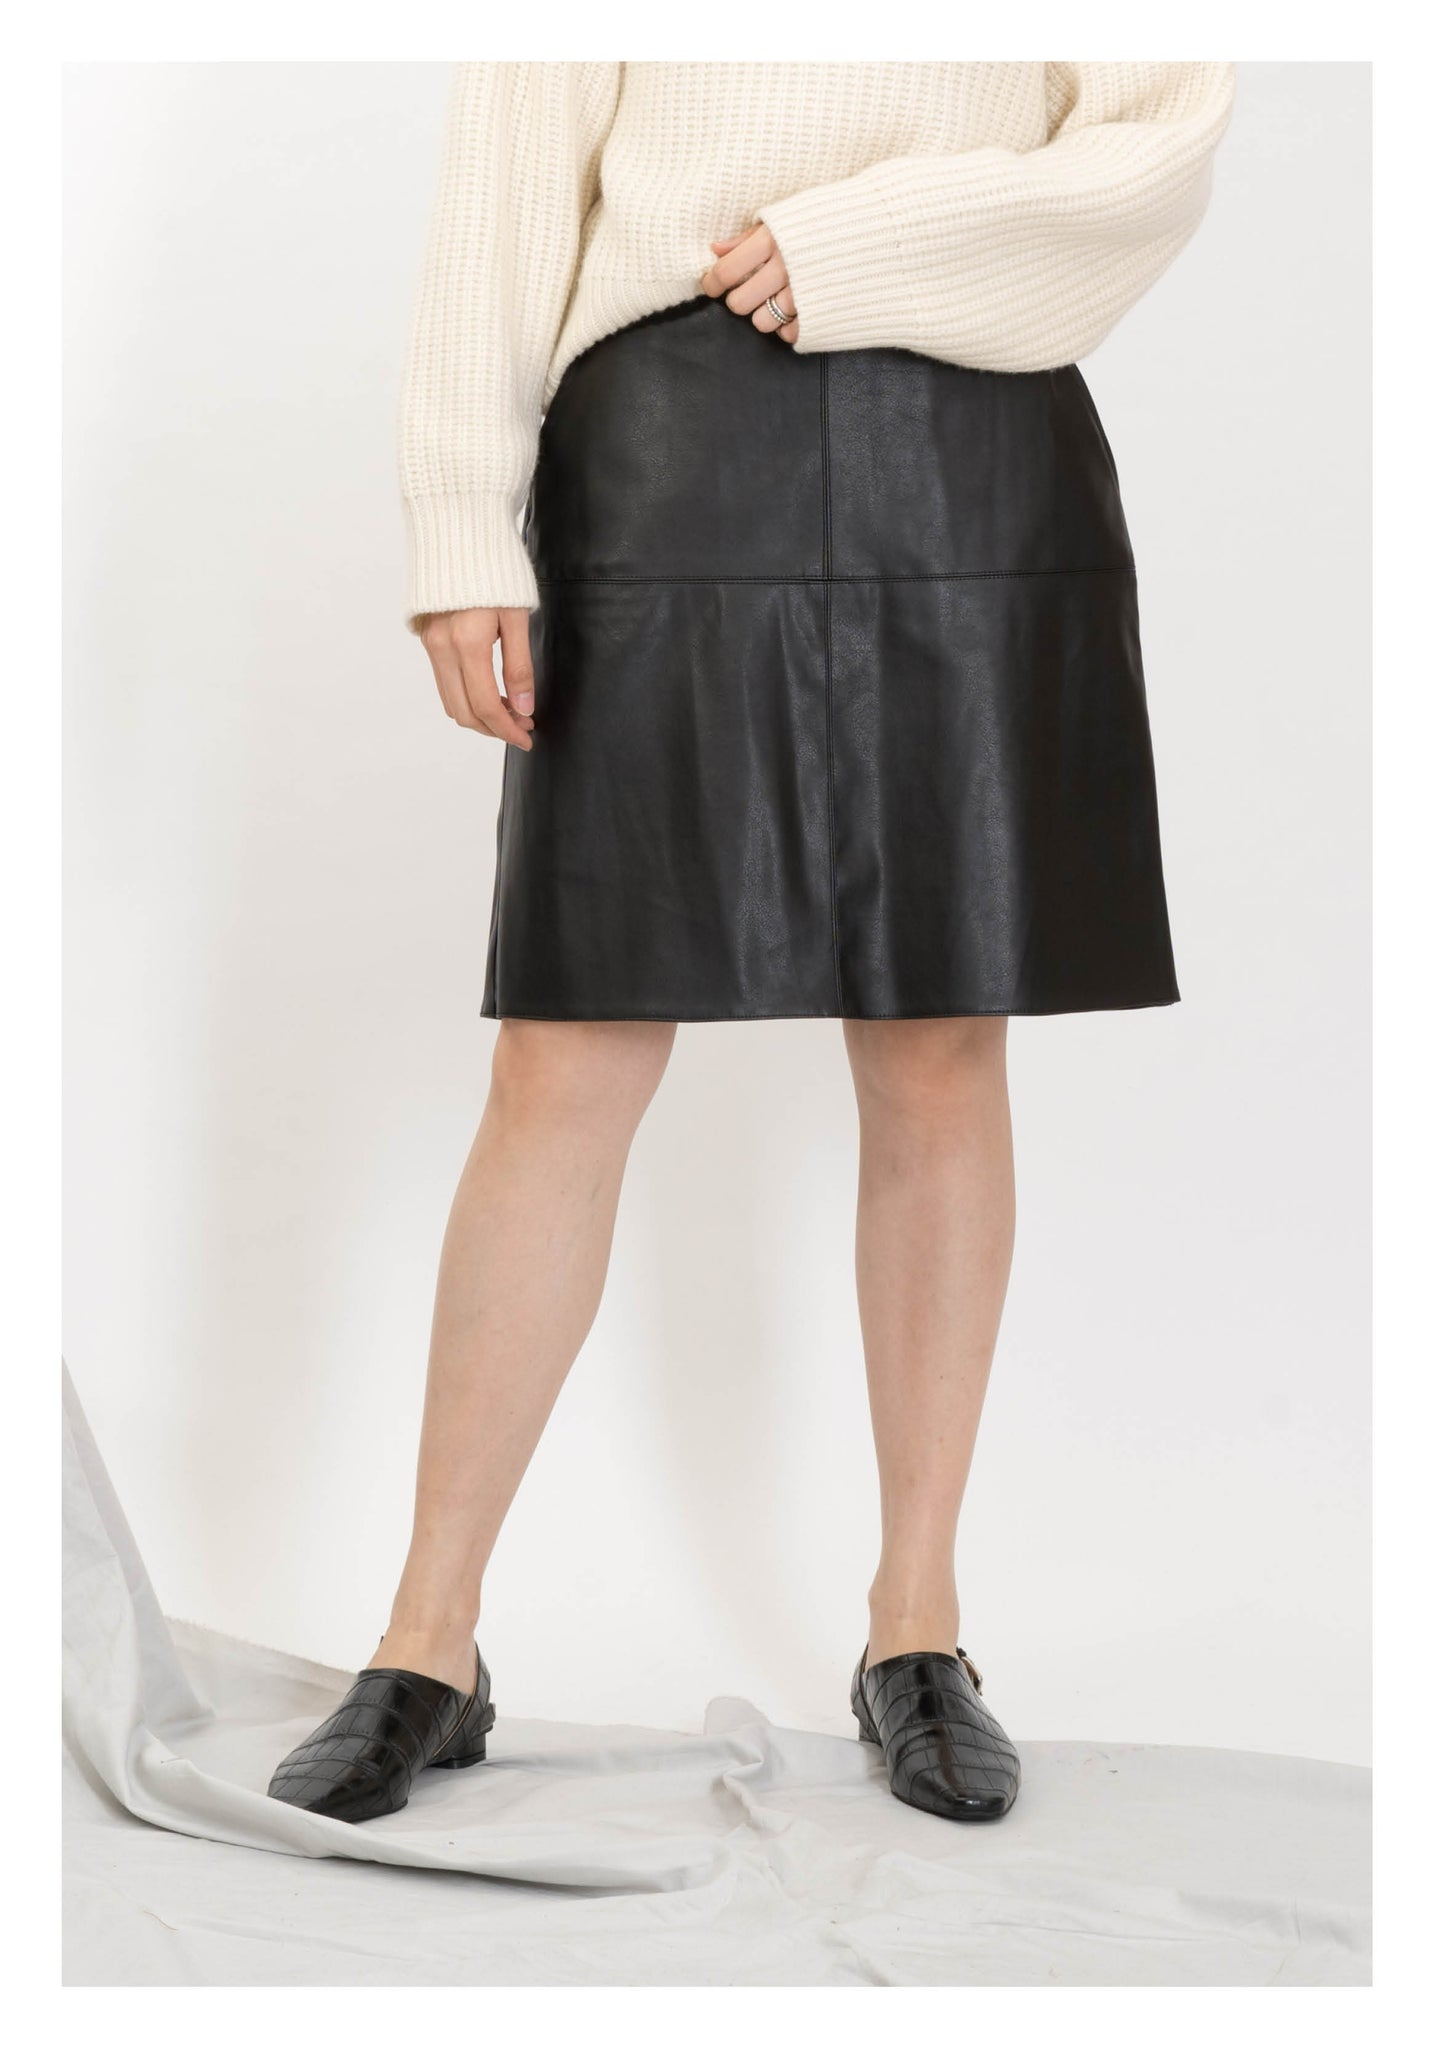 Faux Leather Cross Stitch Short Skirt - whoami